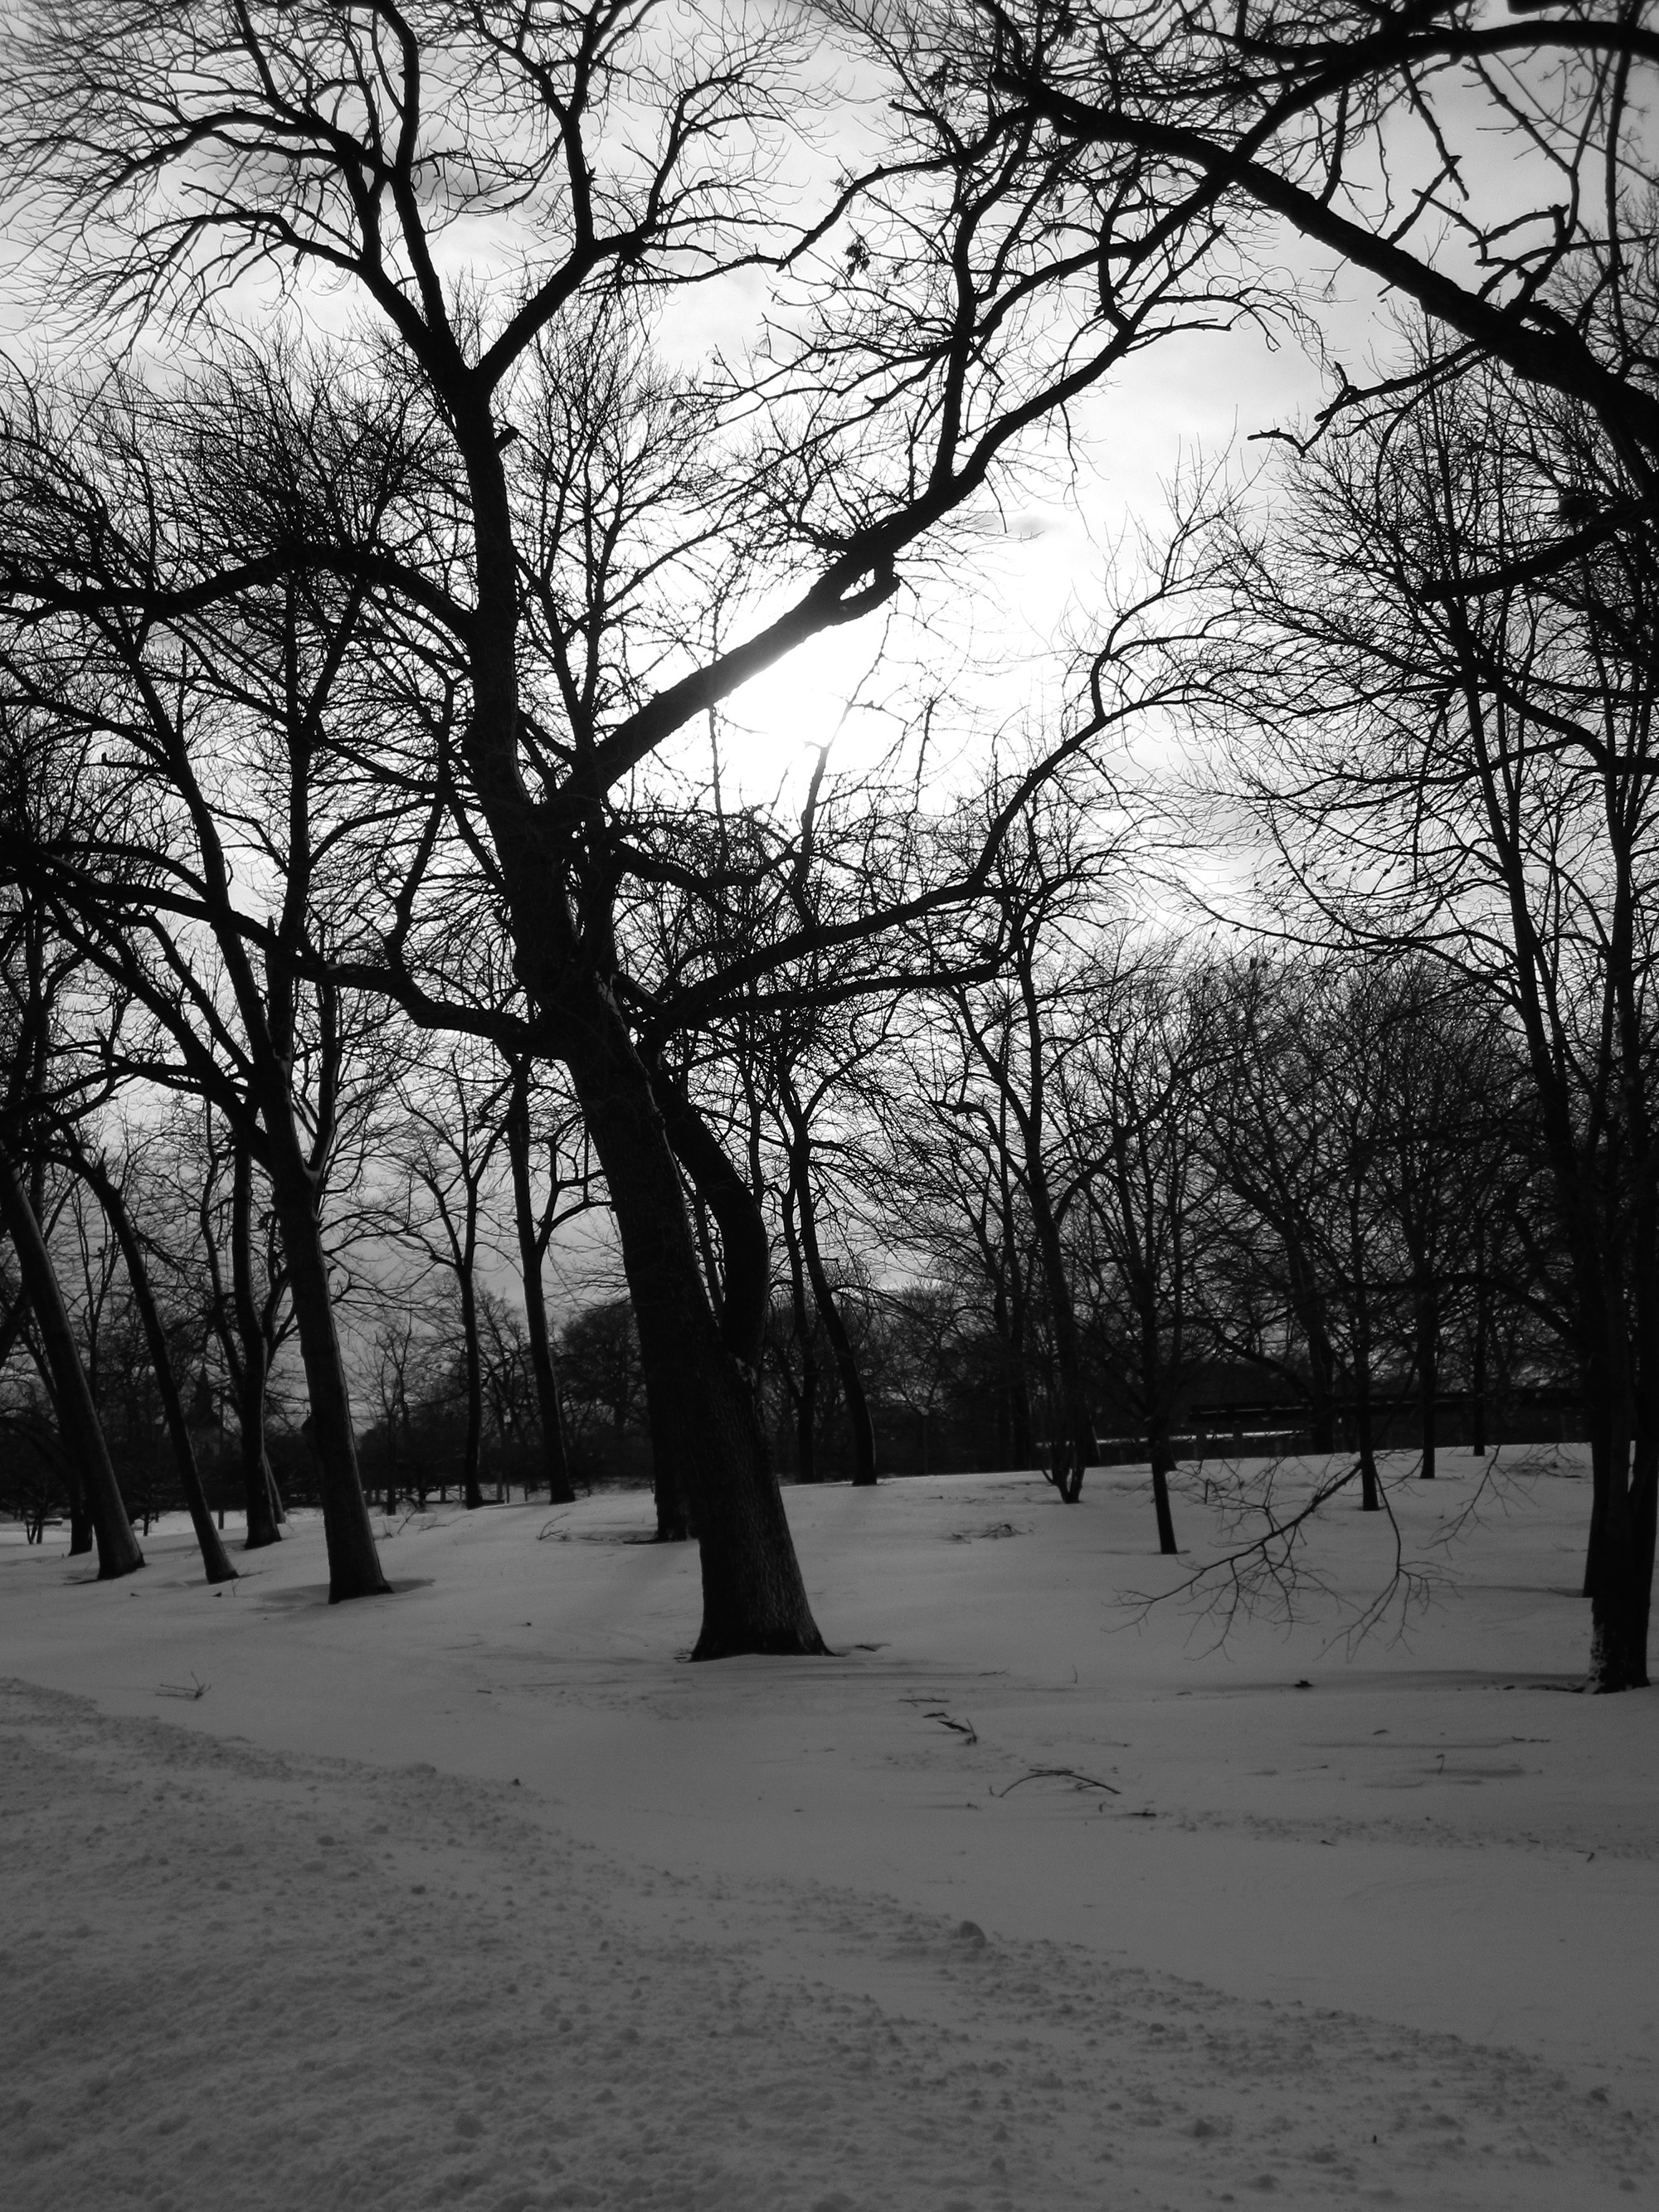 Winter trees in Humboldt Park, Chicago IL